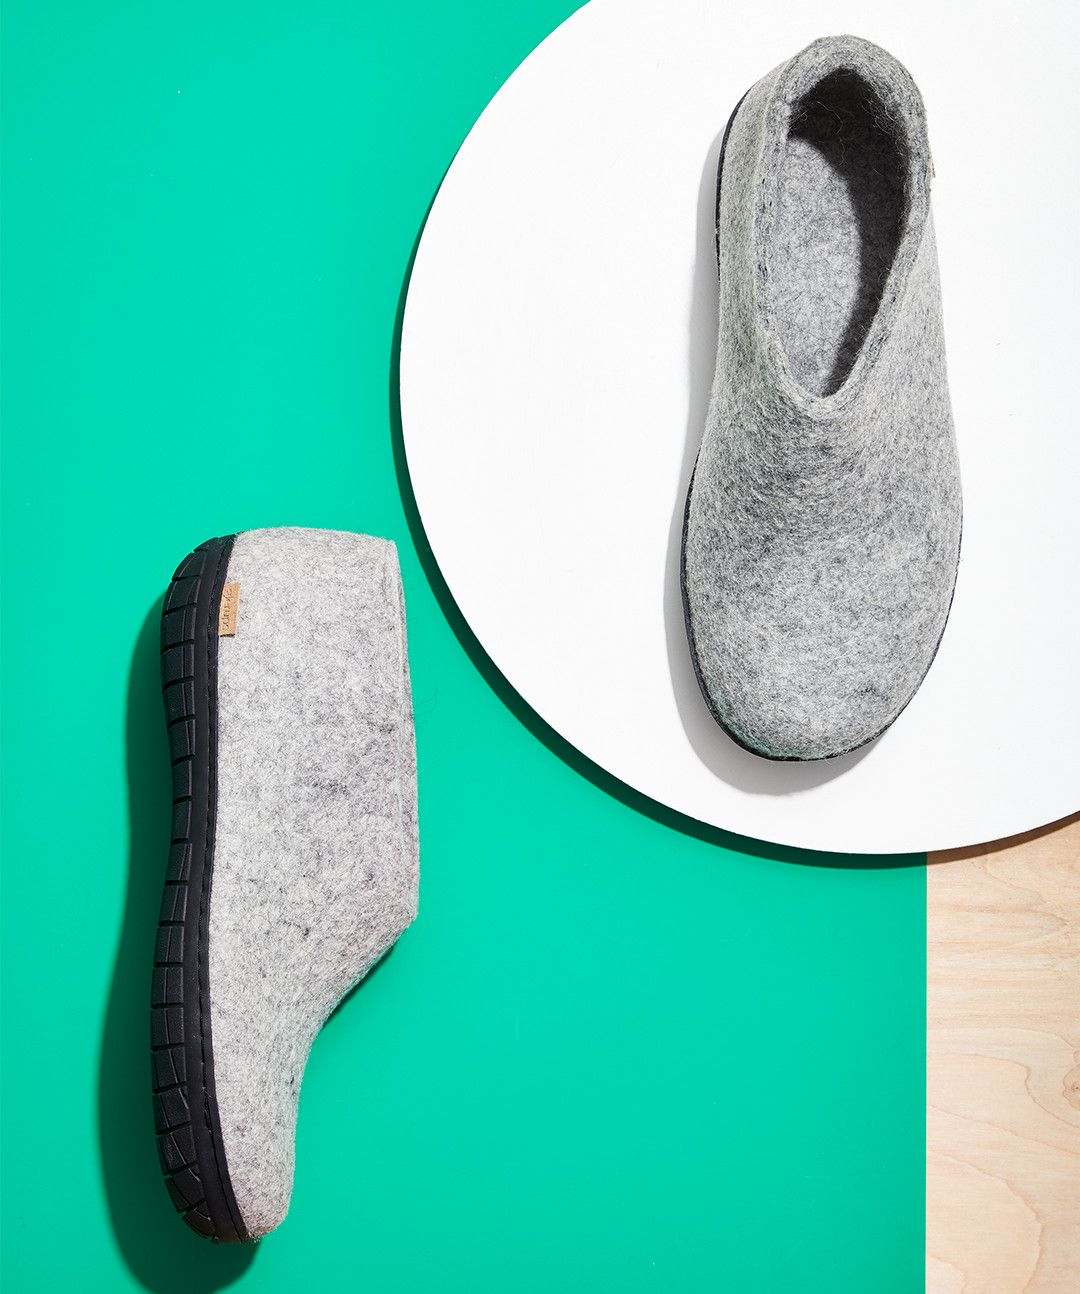 Take That Haul of Holiday Cash and Buy These Ridiculously Good Slippers Immediately